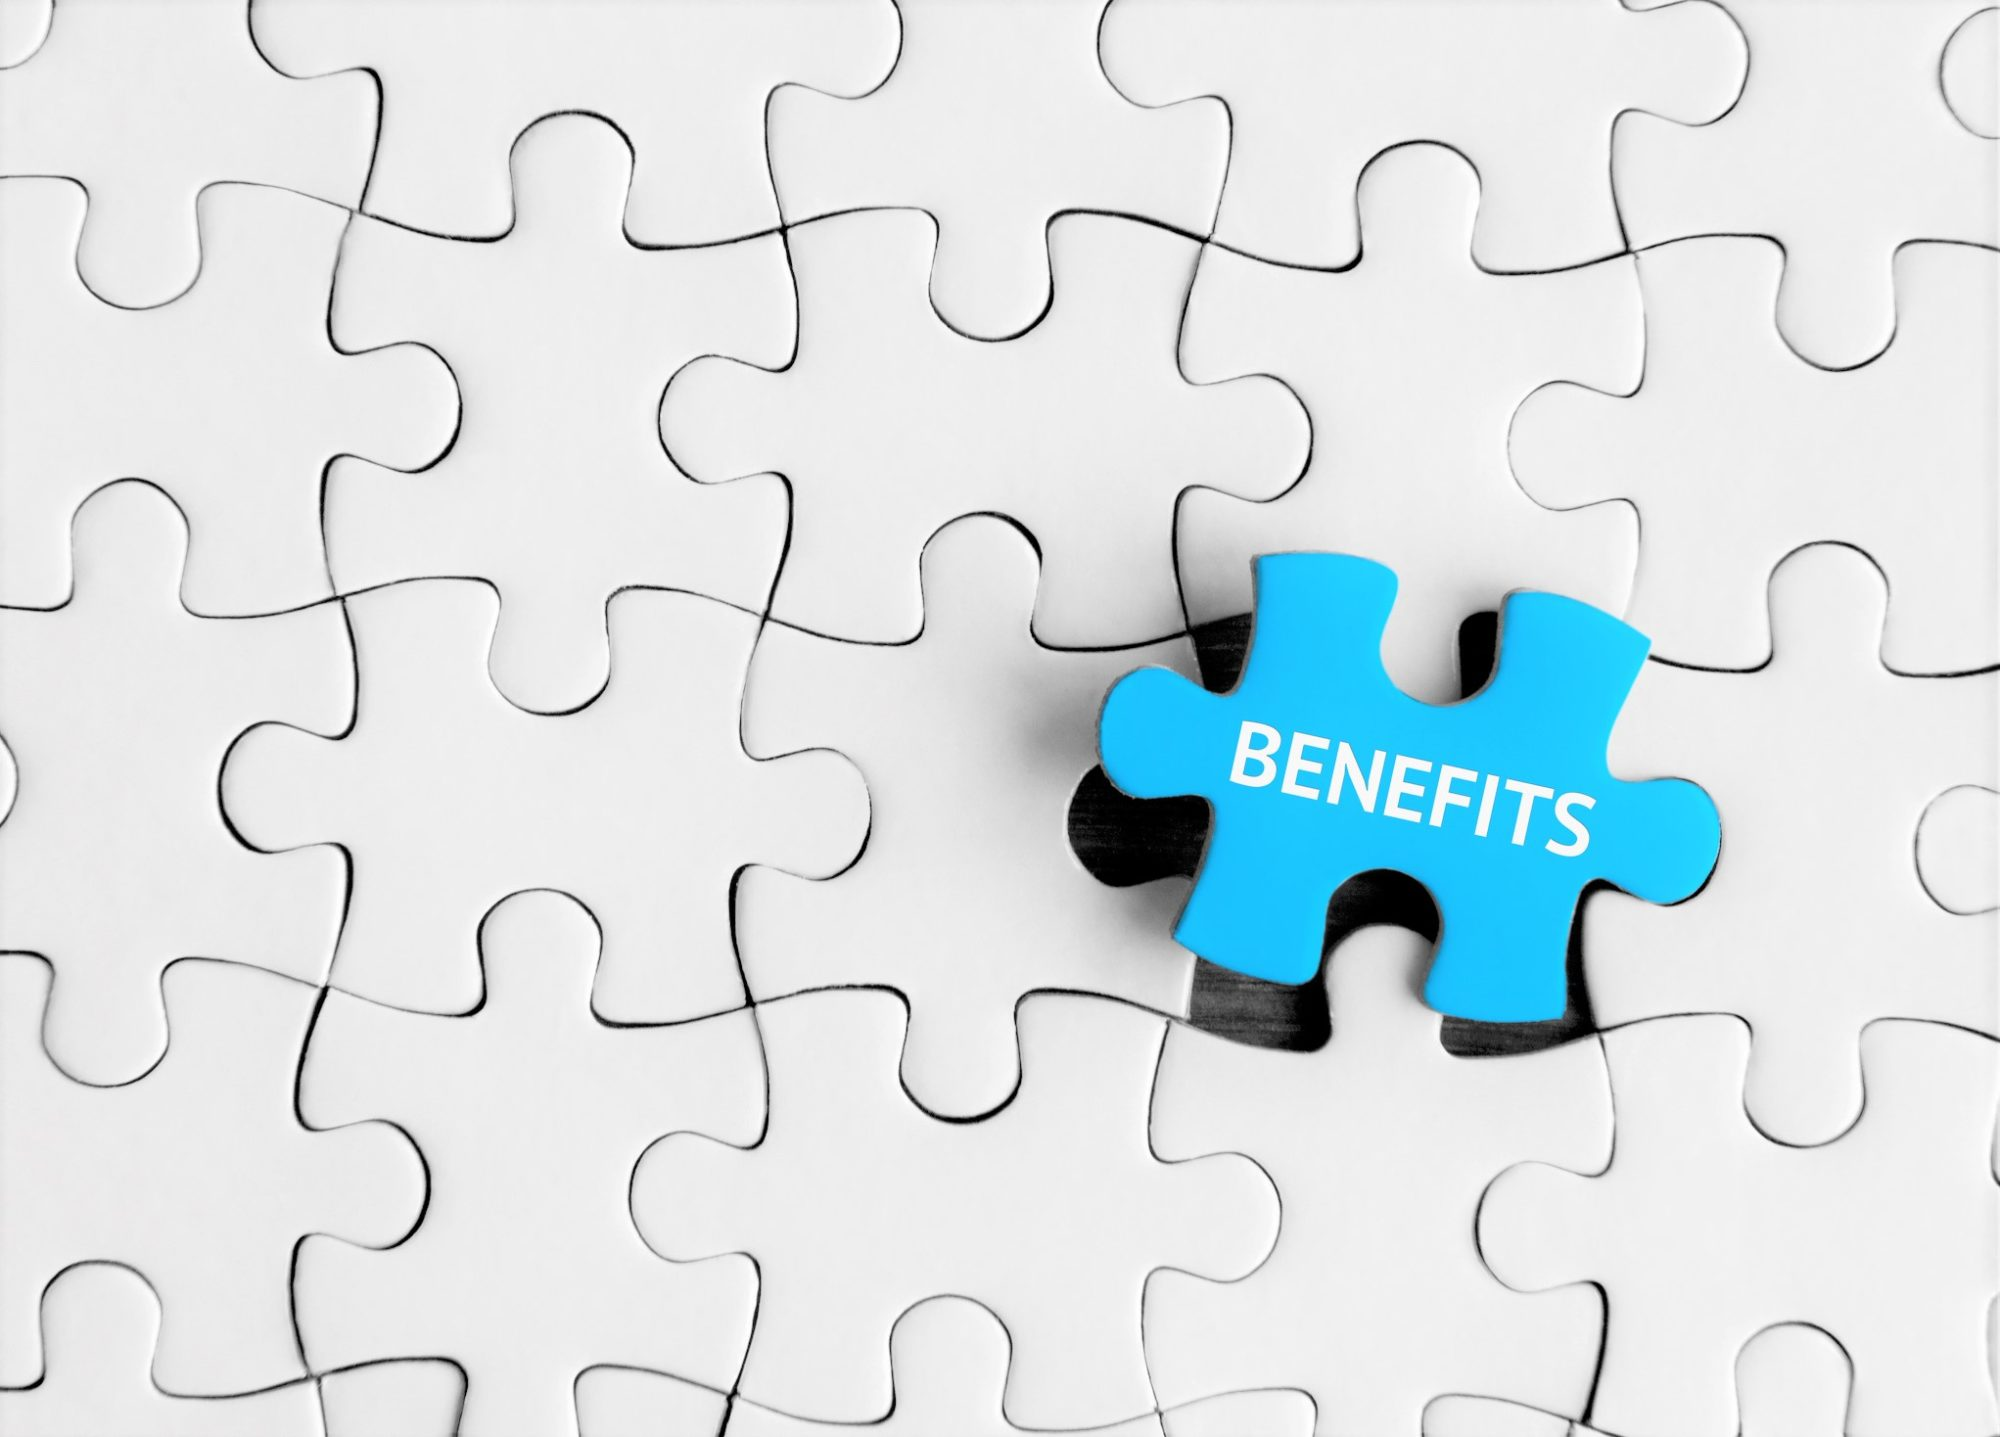 Puzzle pieces with word 'Benefits'